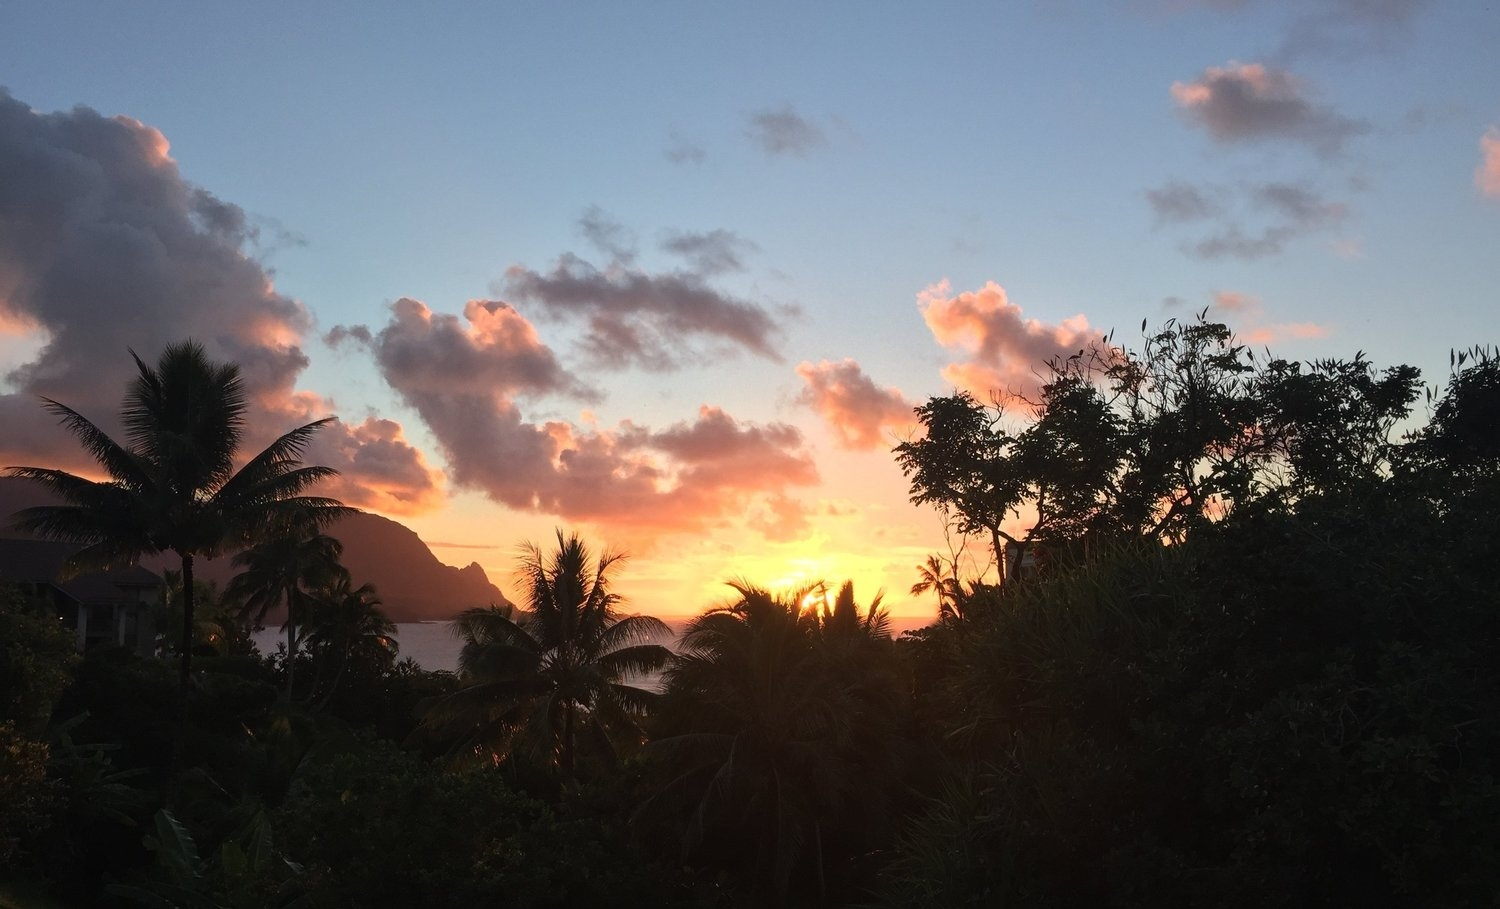 Sunset from Hanalei Bay Resort. The small peak seen through the trees on the left is Makana, or Bali Hai, made famous by South Pacific.